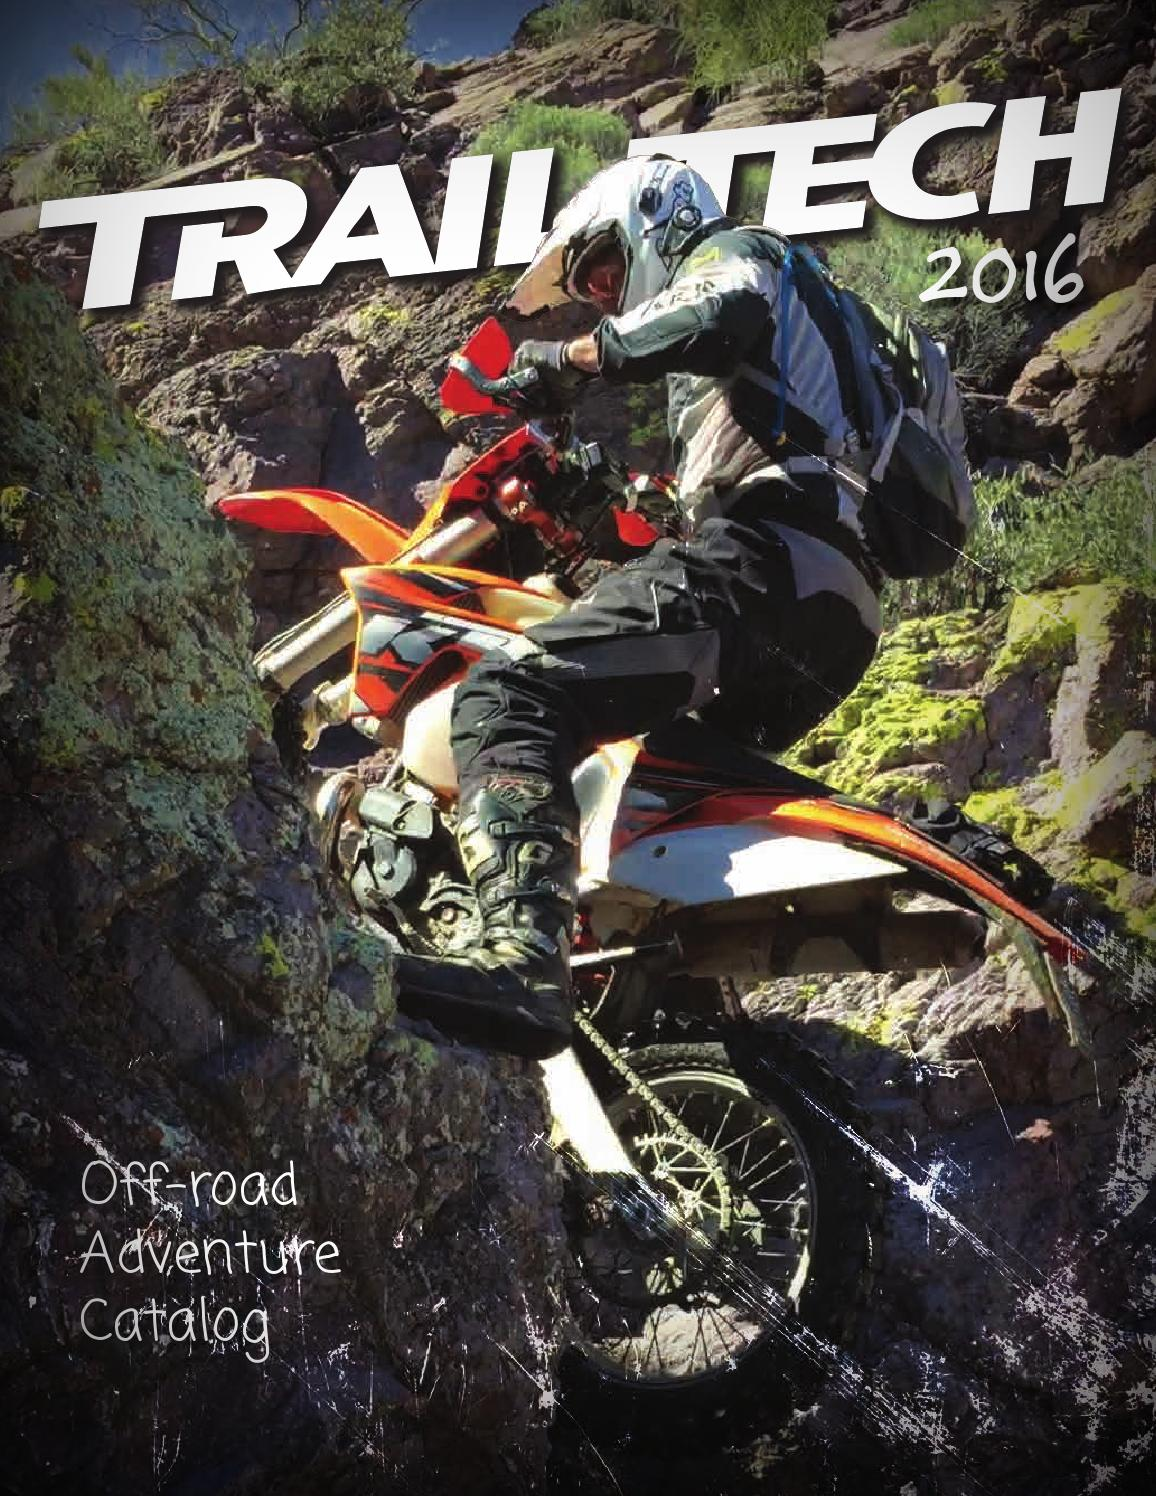 2016 Trail Tech Catalogue Off Road Imports By Issuu Husqvarna Wiring Harness Connectors